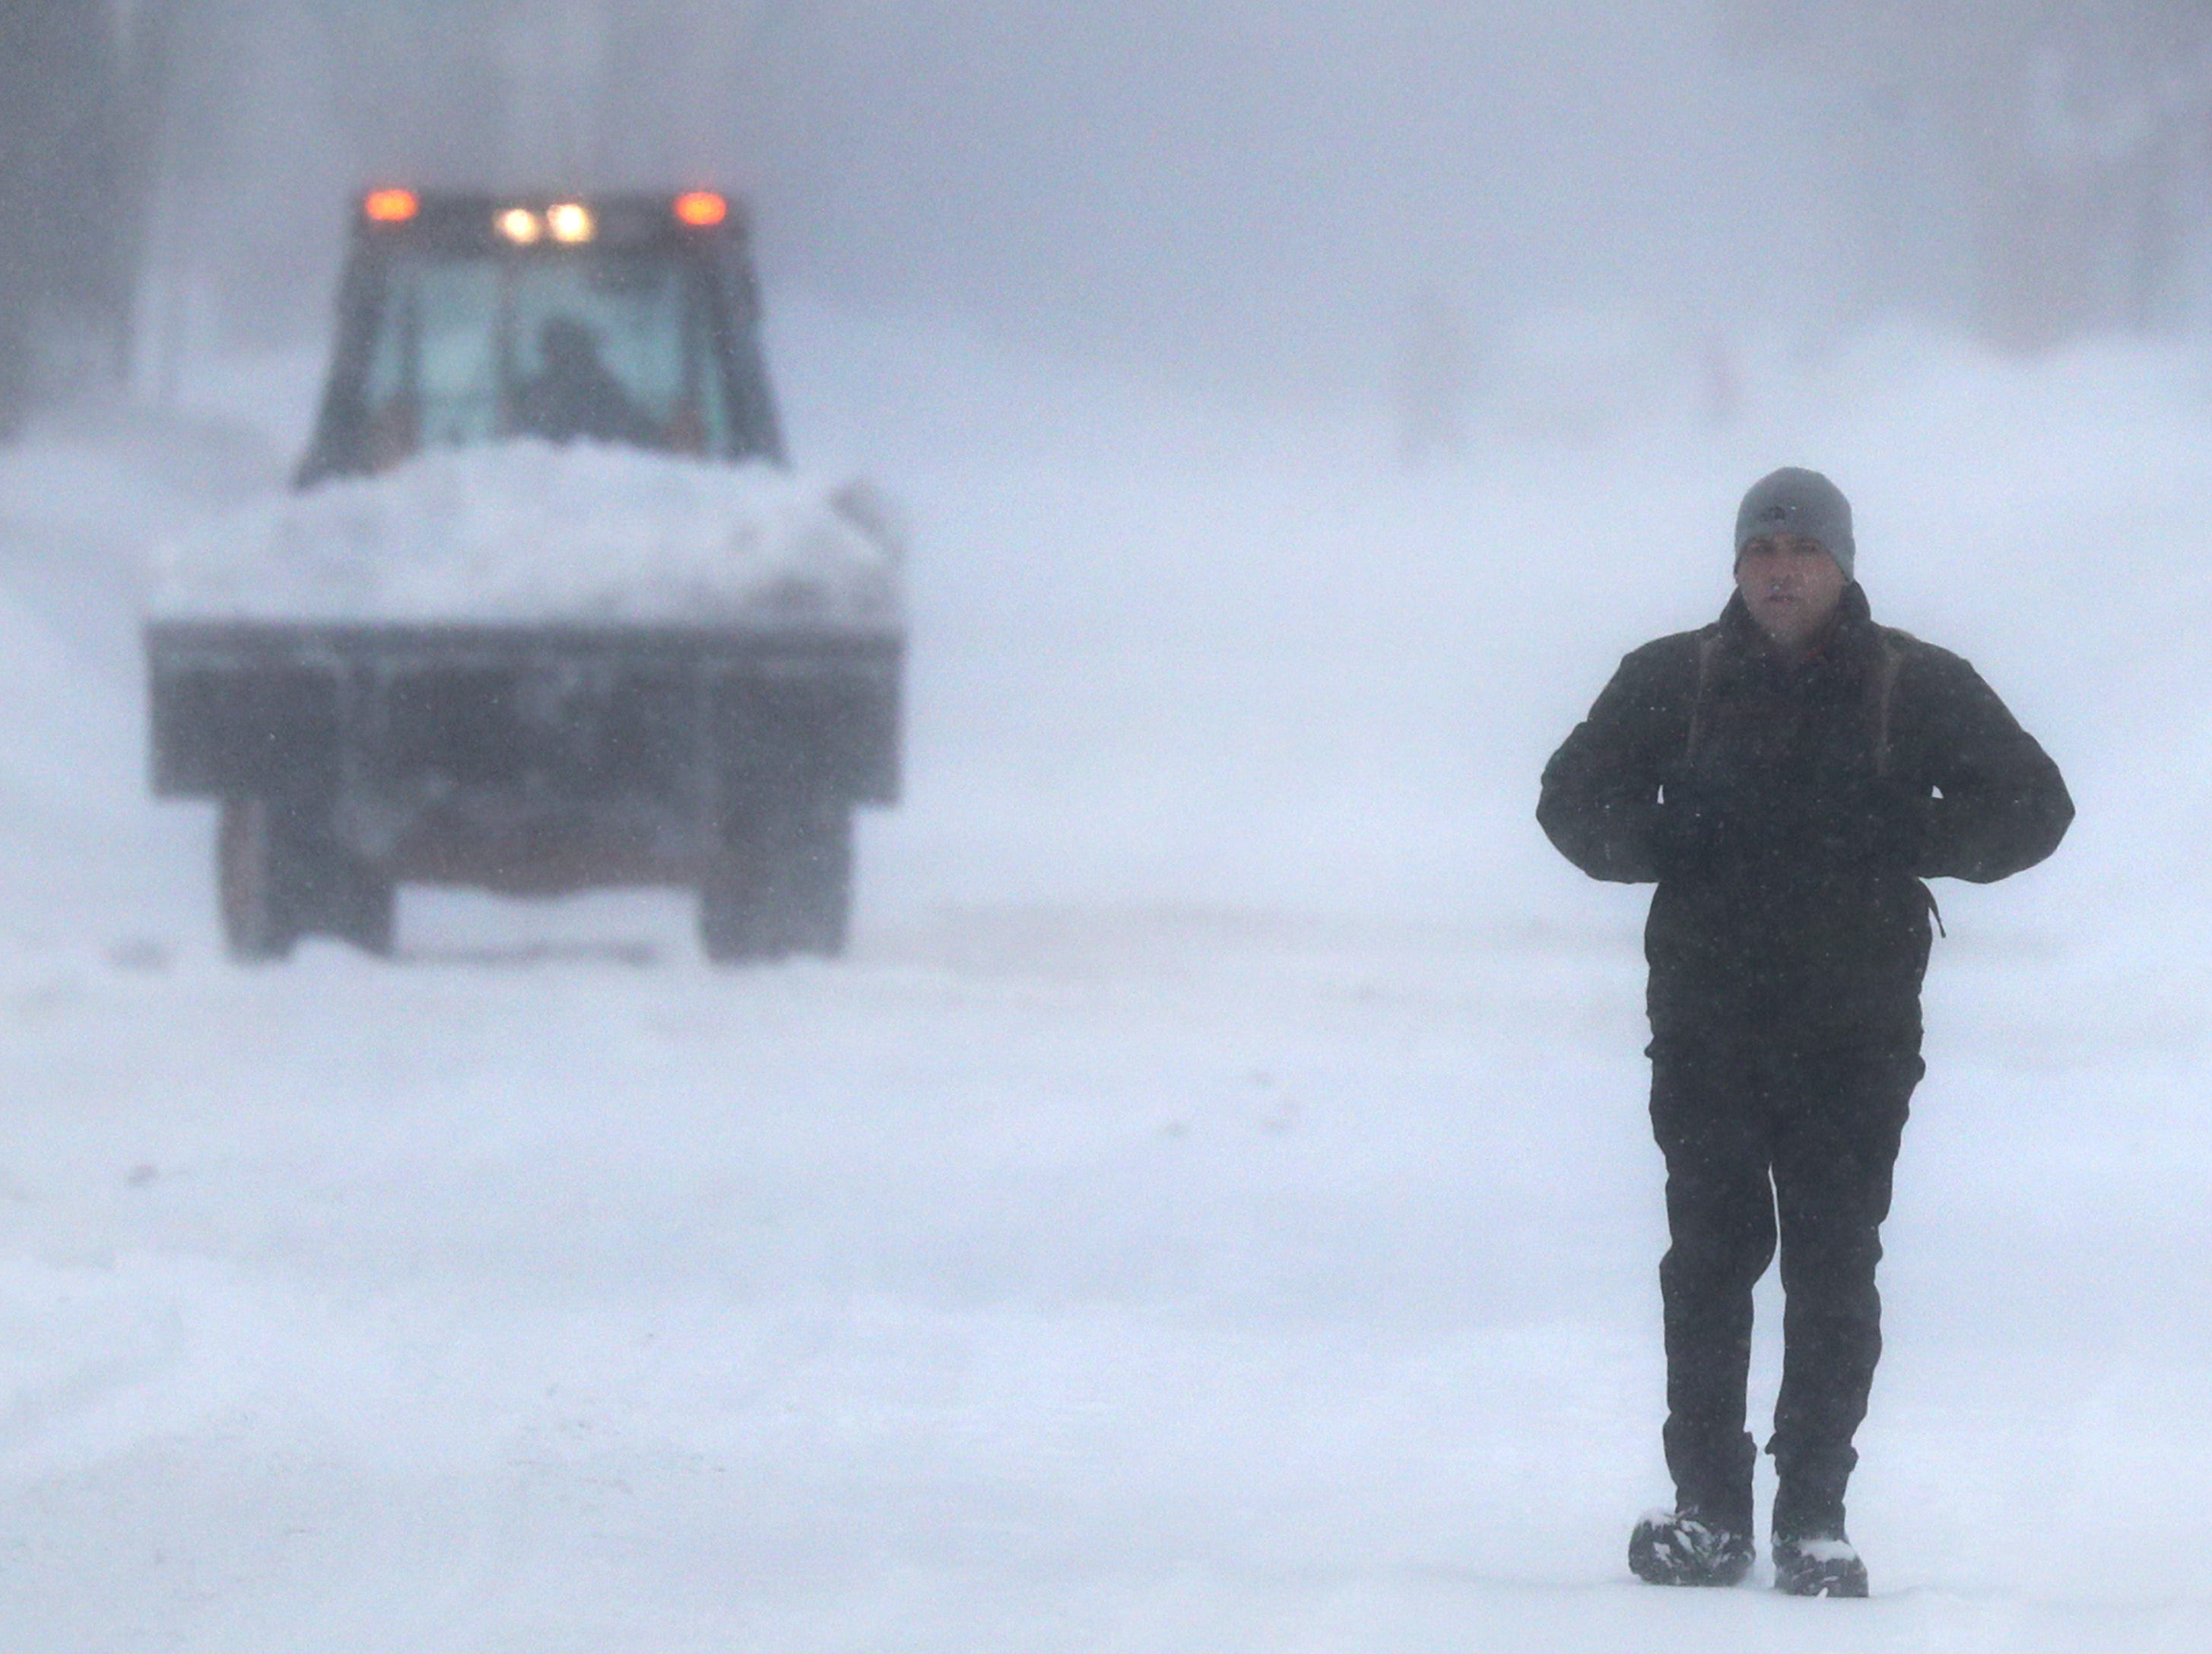 Brian Piasecki walks to work on Tuesday, February 12, 2019, in Appleton, Wis. The latest snow storm to move through the state dropped several inches of snow overnight, 6 to 12 inches are expcted by Tuesday evening.Wm. Glasheen/USA TODAY NETWORK-Wisconsin.